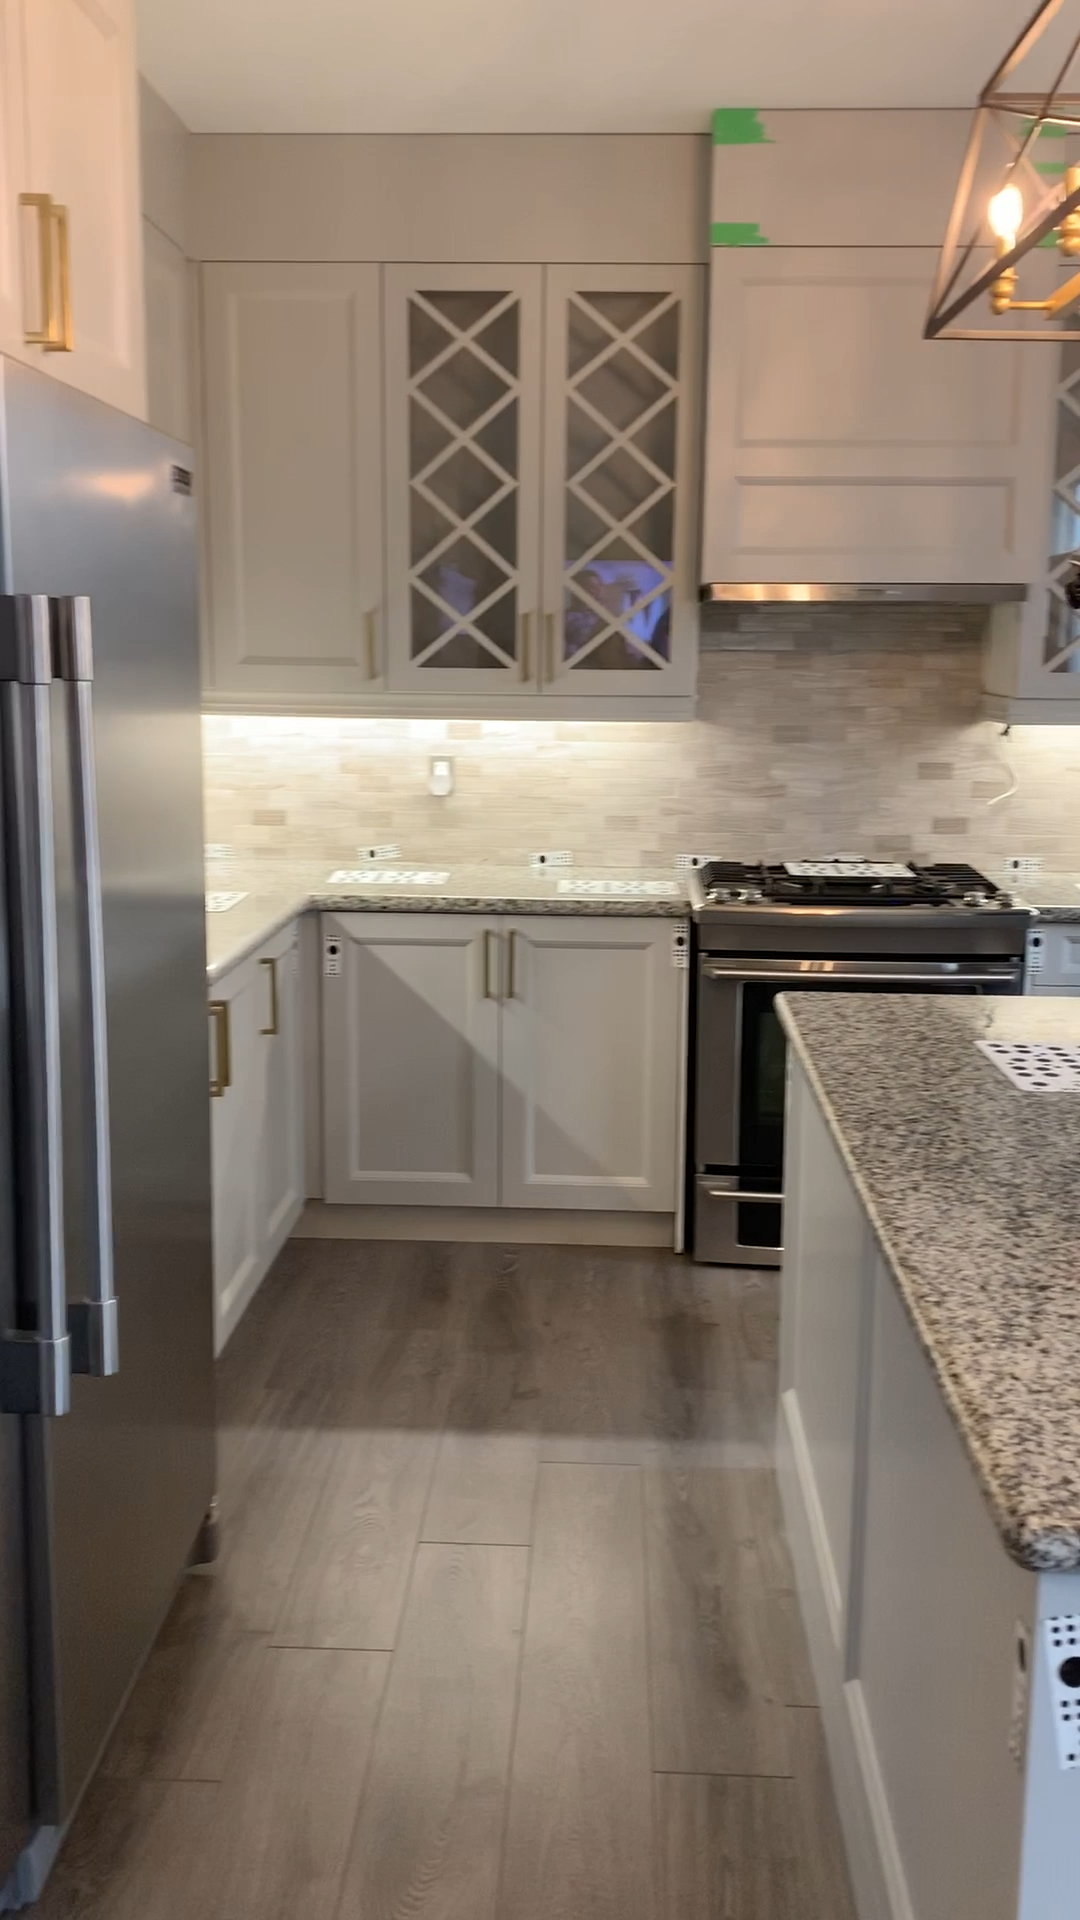 Beautiful quartz countertops for a recently renovated kitchen. #kitchen #quartz #quartzcountertops #countertops #kitchencountertops #freshcountertops